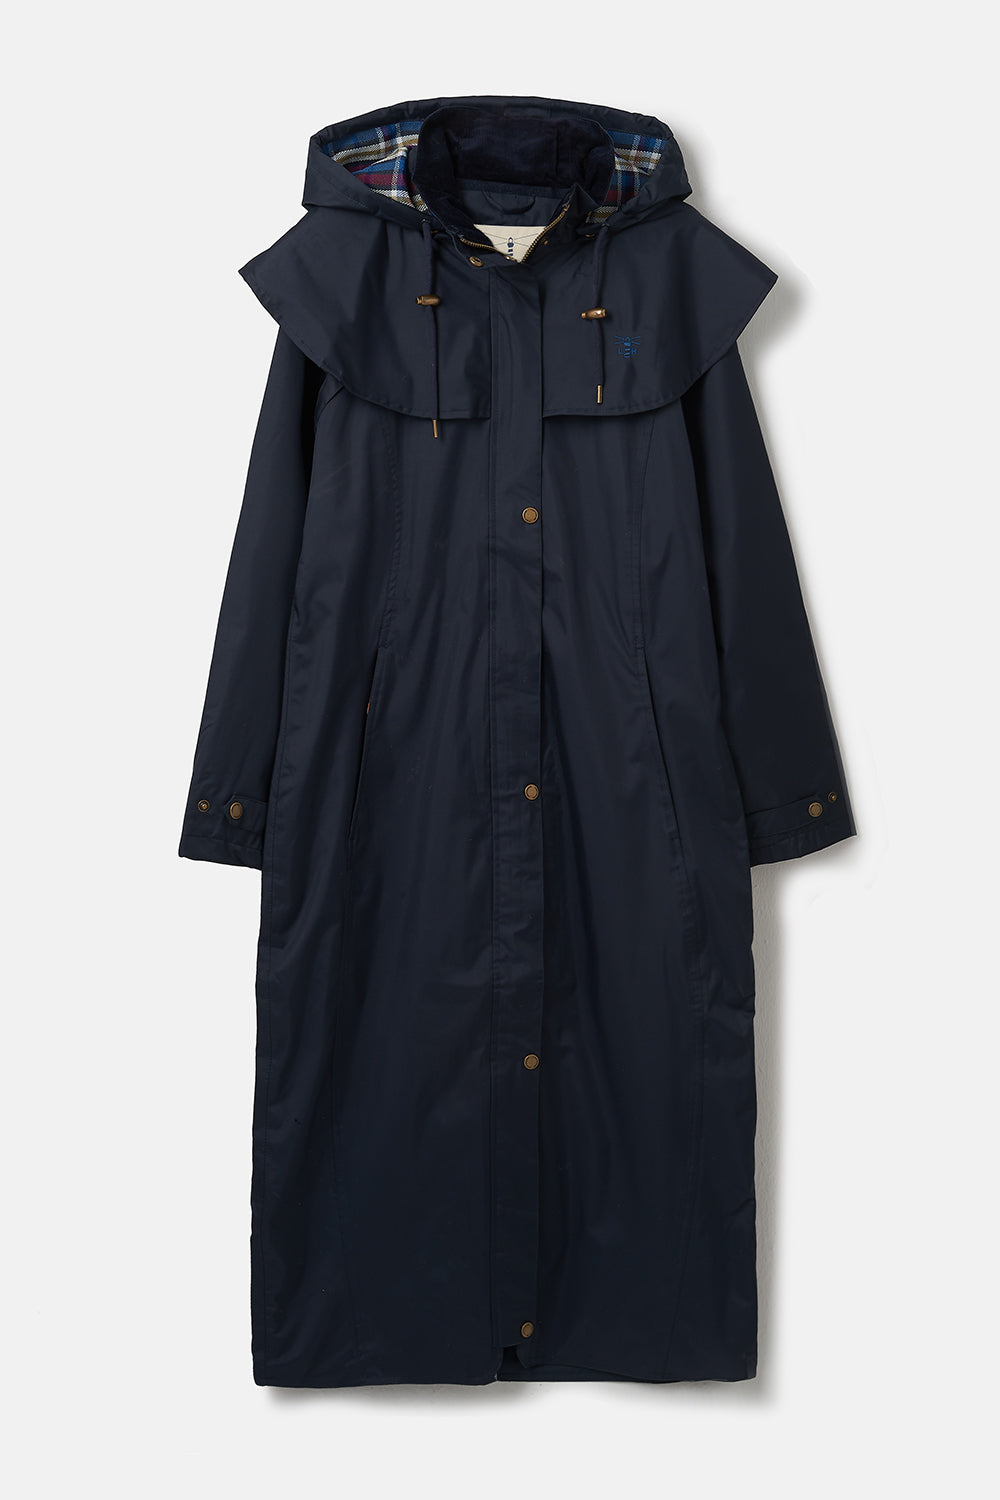 Lighthouse Outback - Womens Full Length Raincoat - Navy